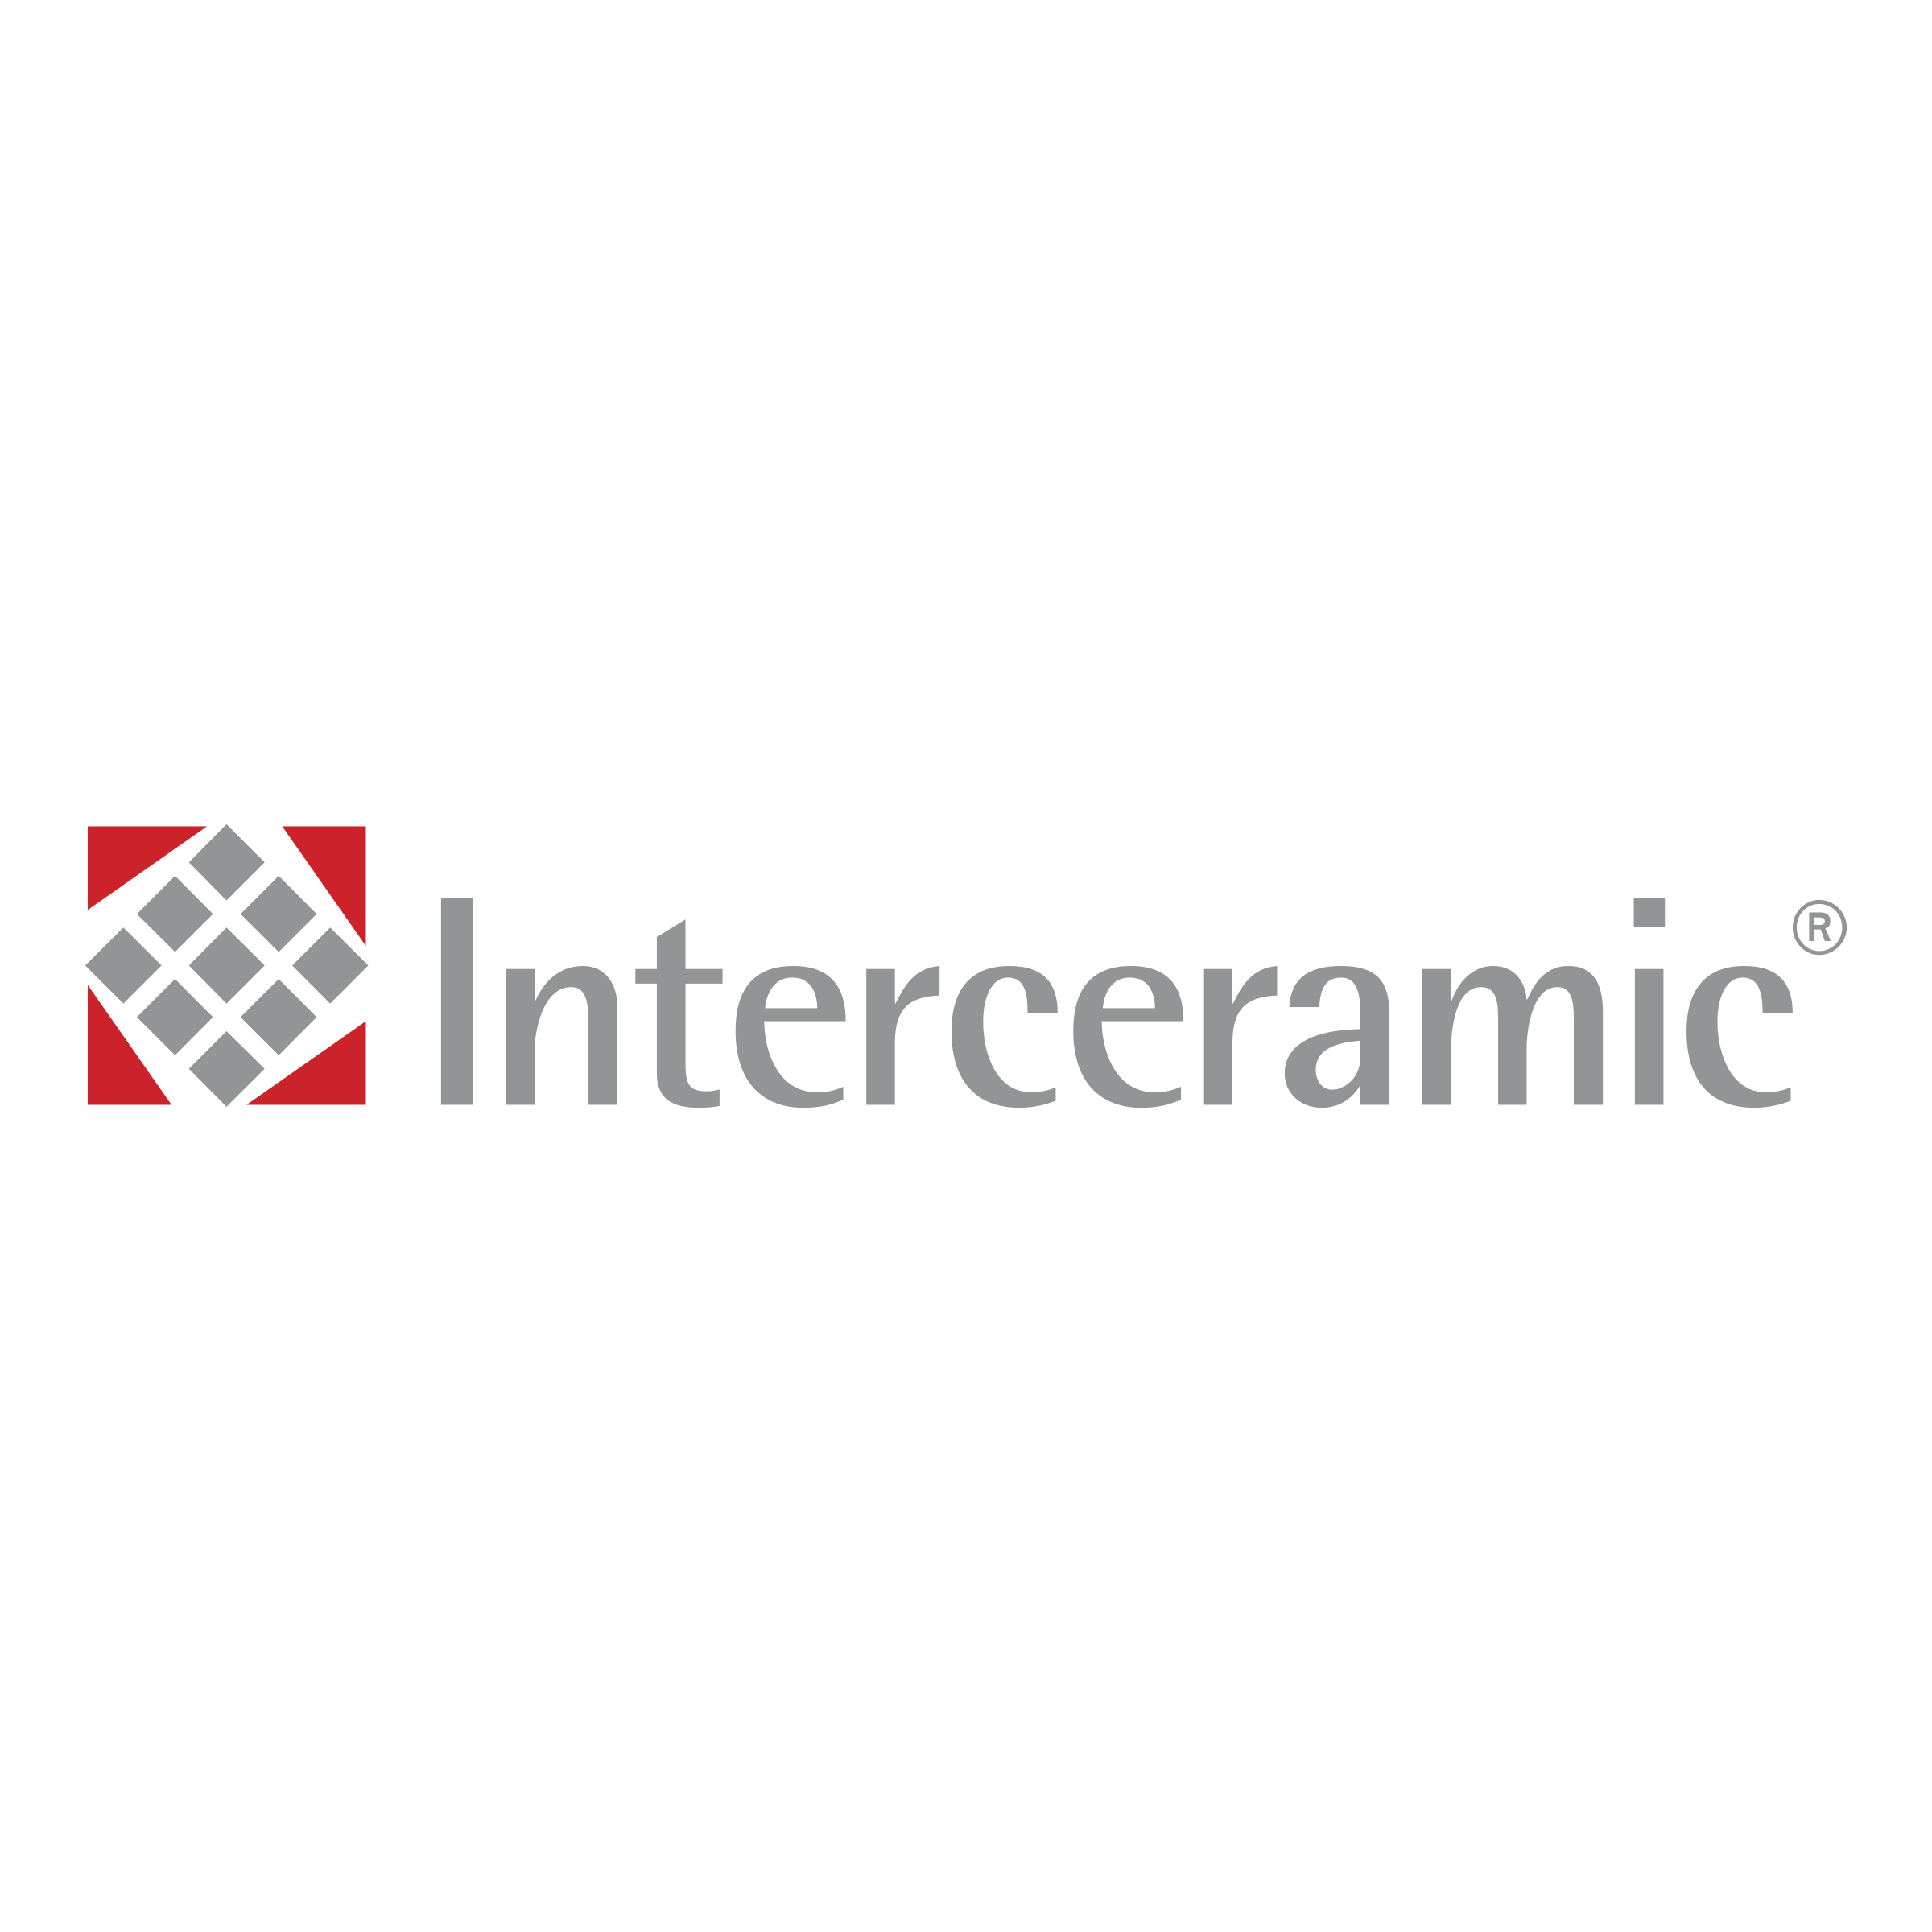 interceramic-logo-png-transparent.png